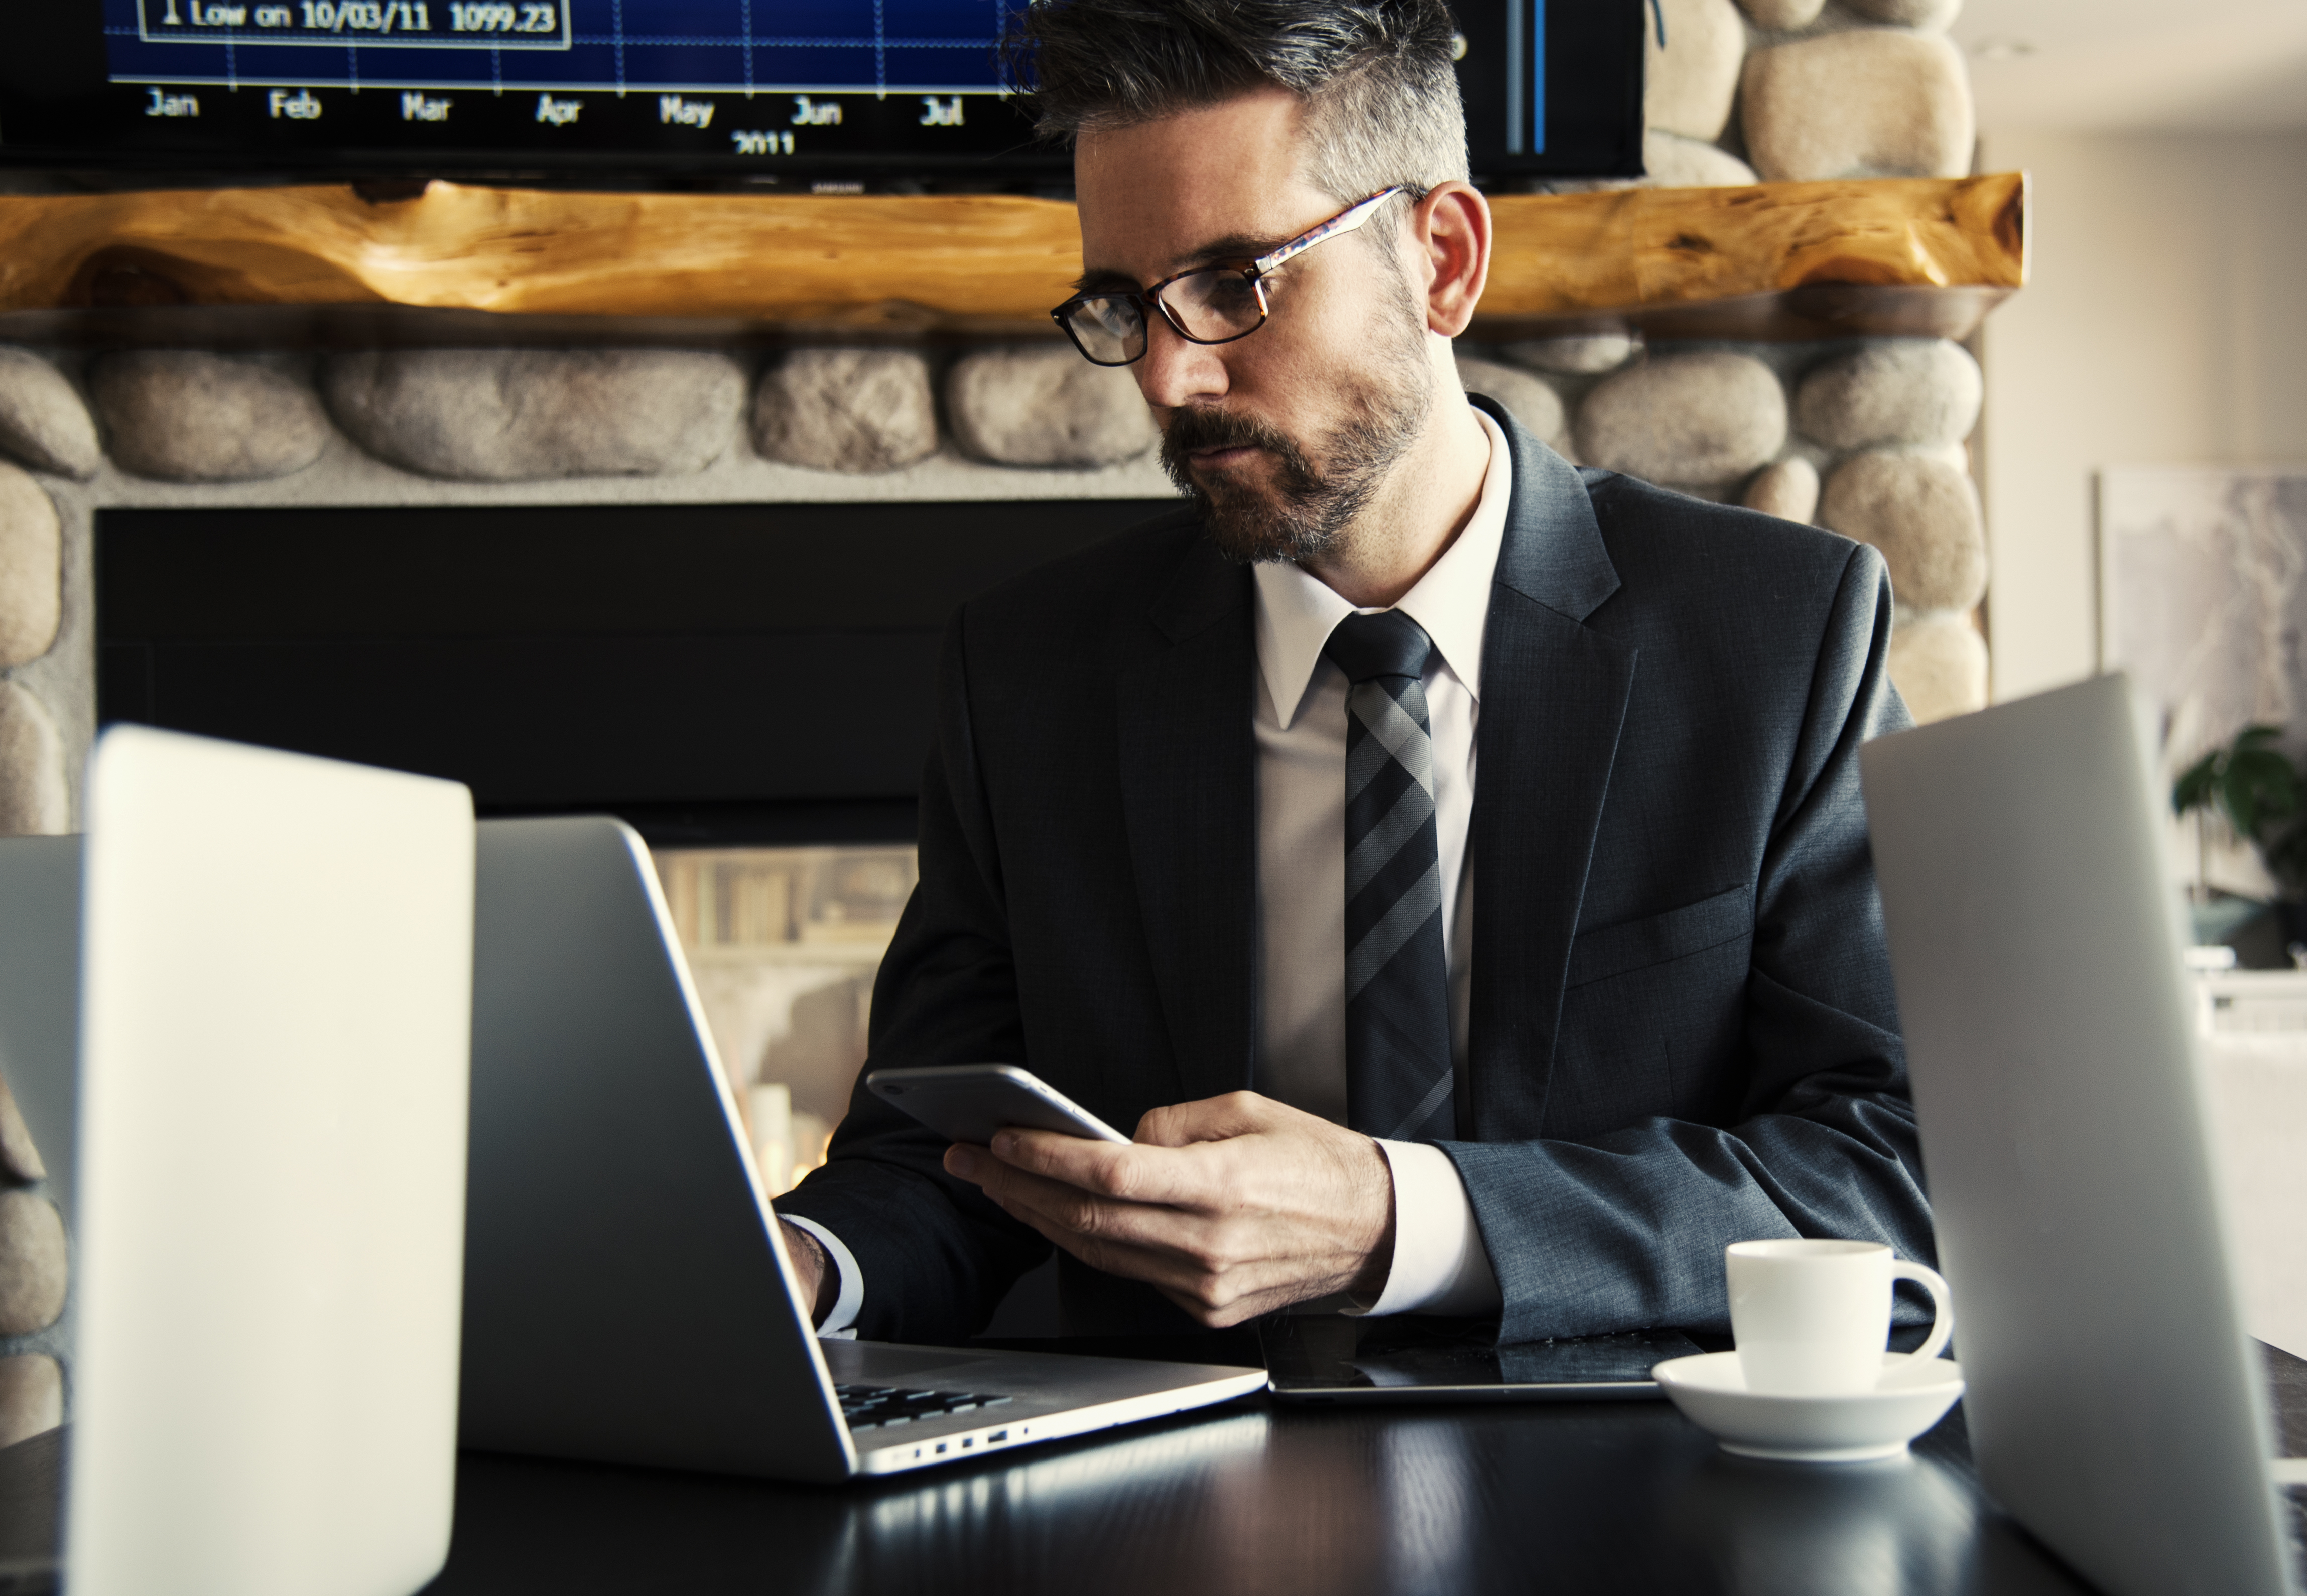 the benefits of managing an online business The challenges of growing a business - and how to meet them guide even appoint someone else to act as managing director or chairman welcoming change.